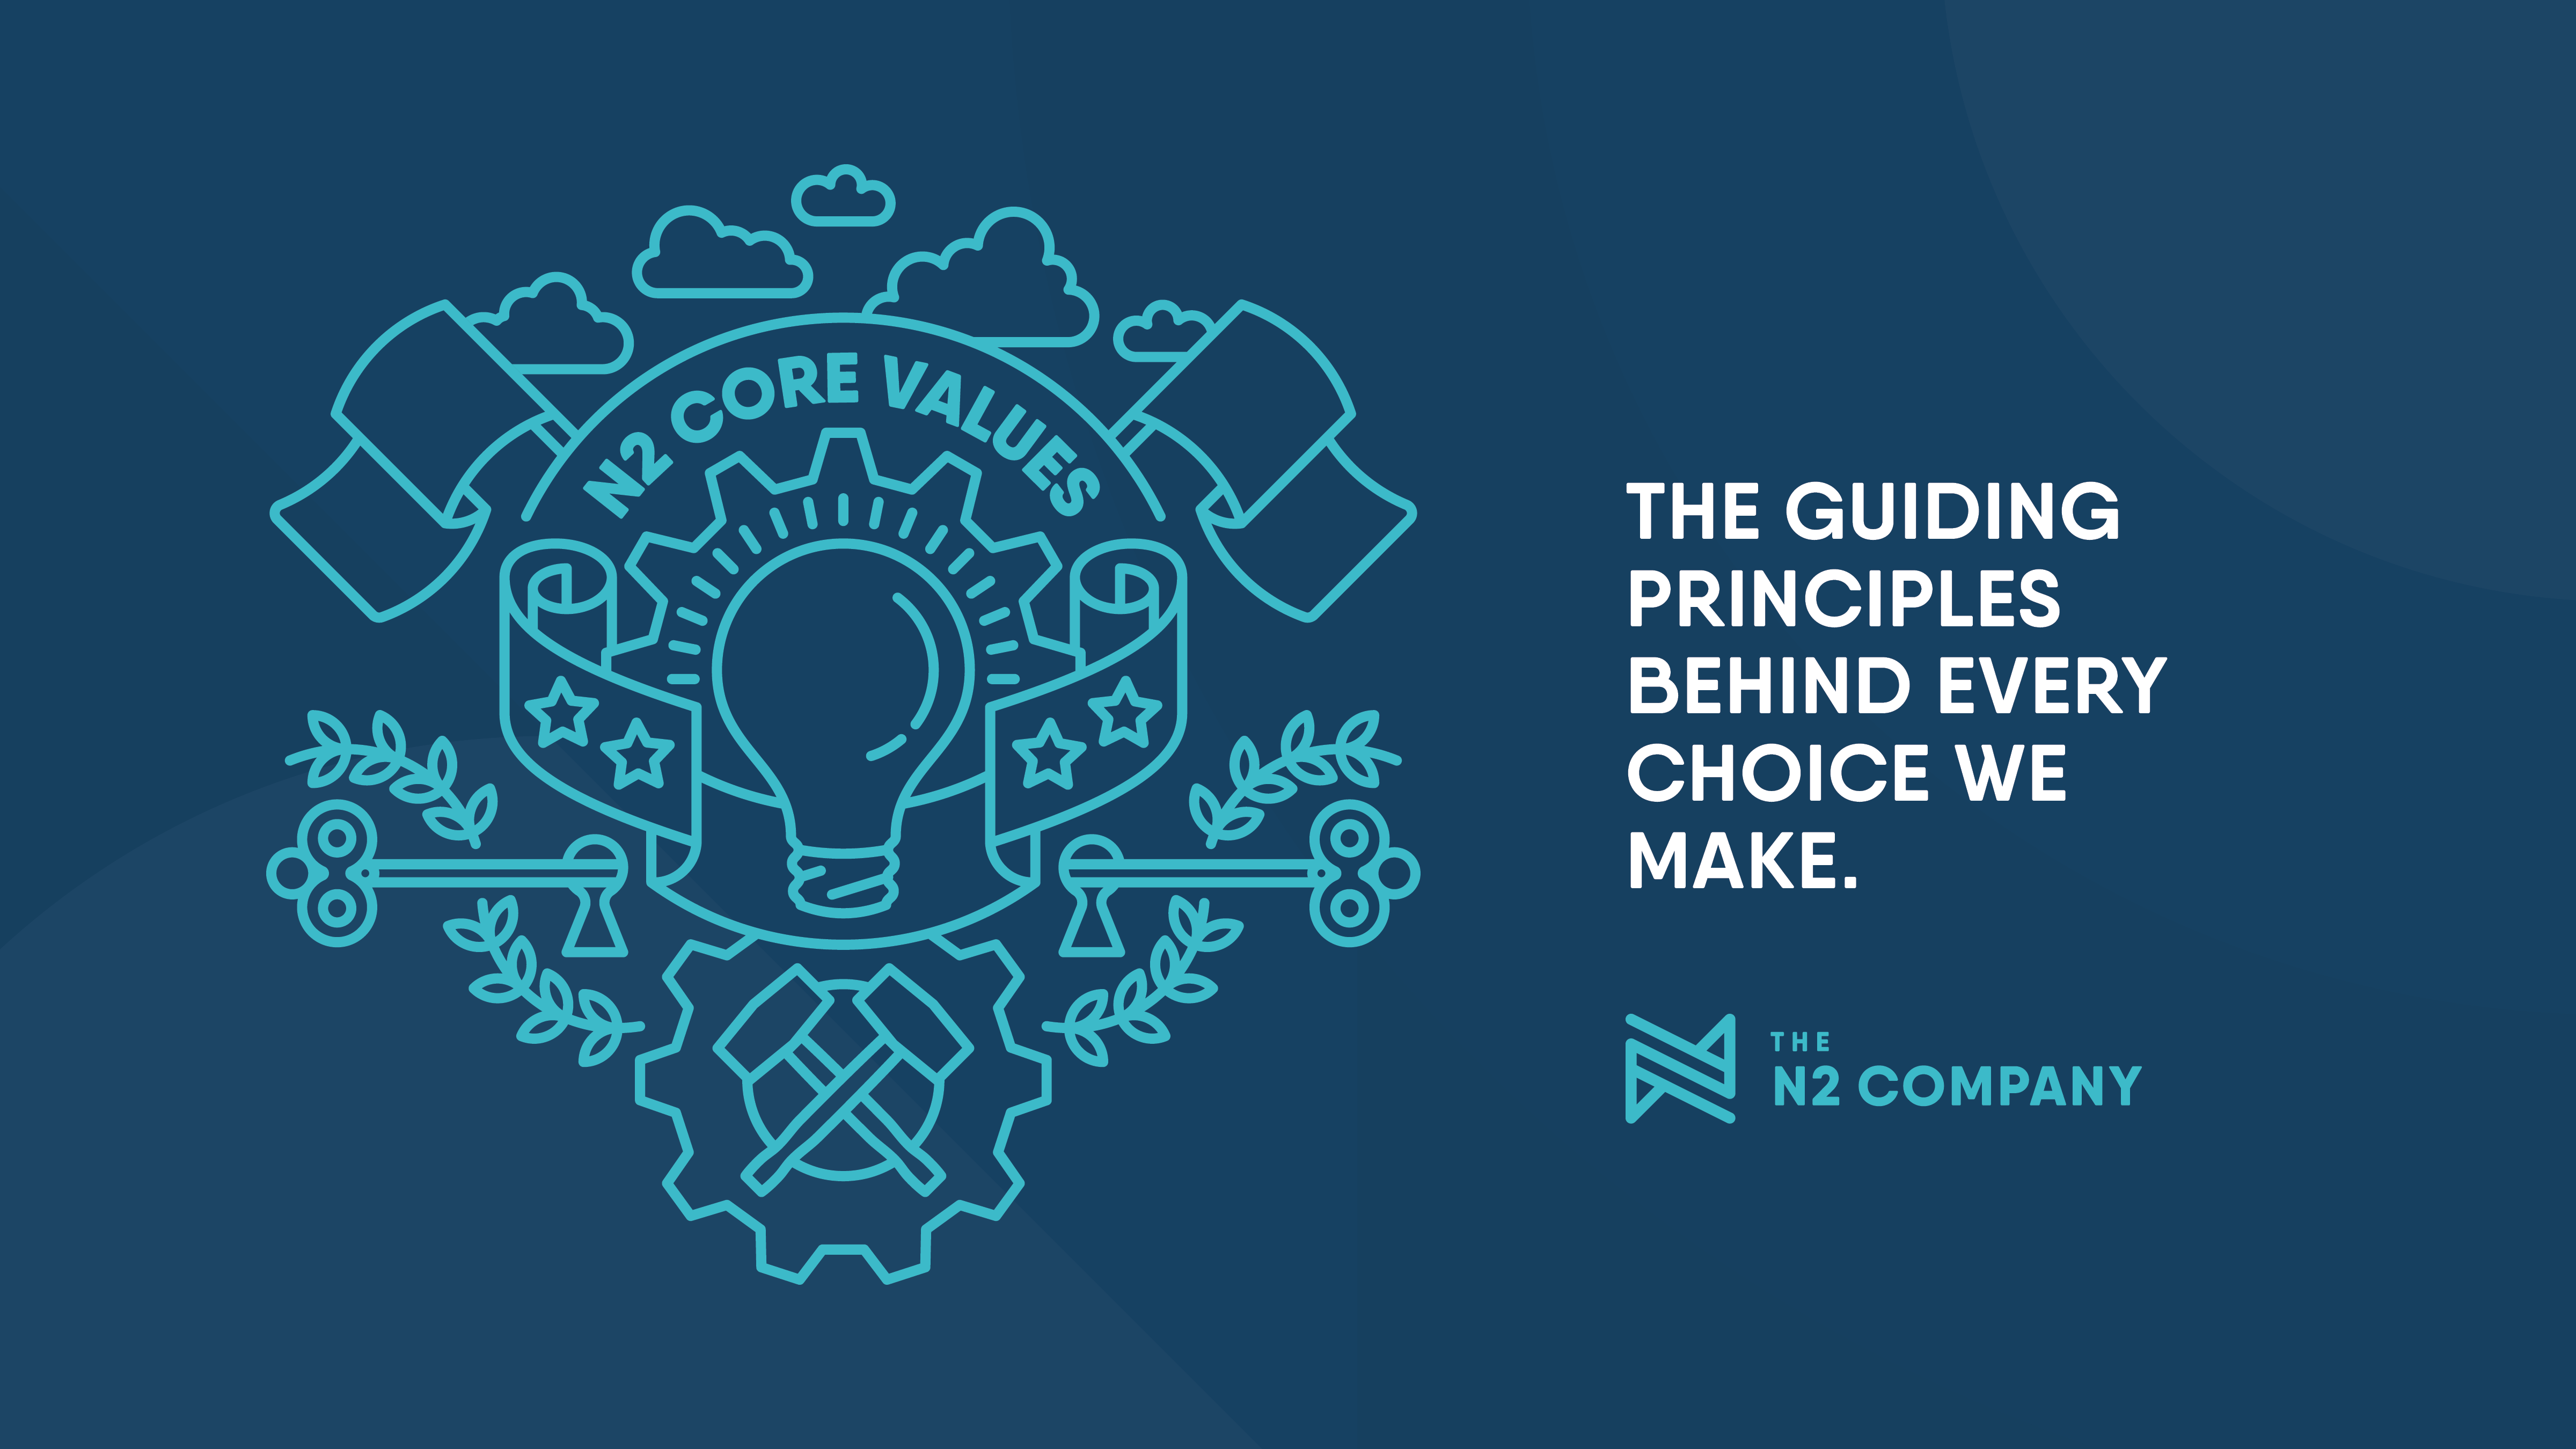 company culture, the guiding principles behind every choice we make